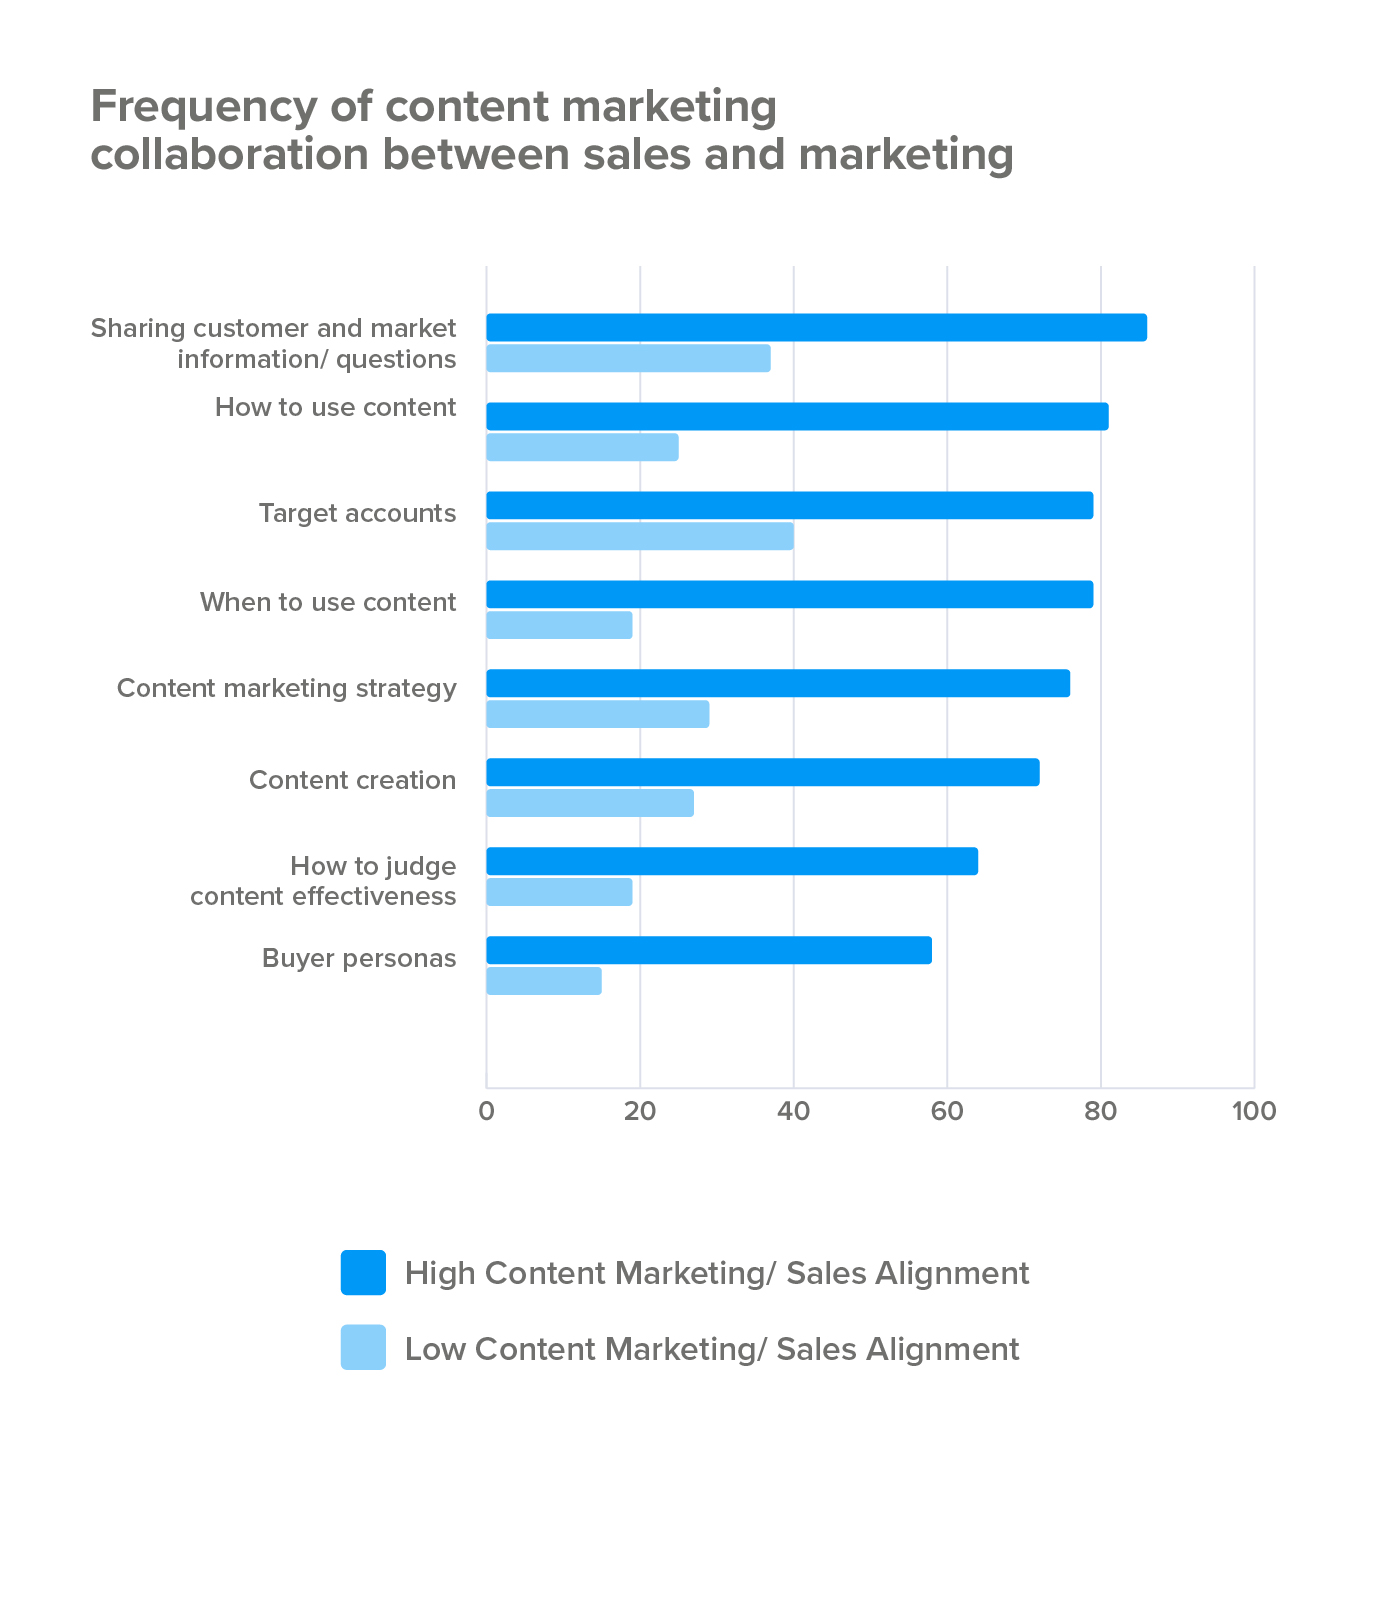 Frequency of collaboration between sales and marketing